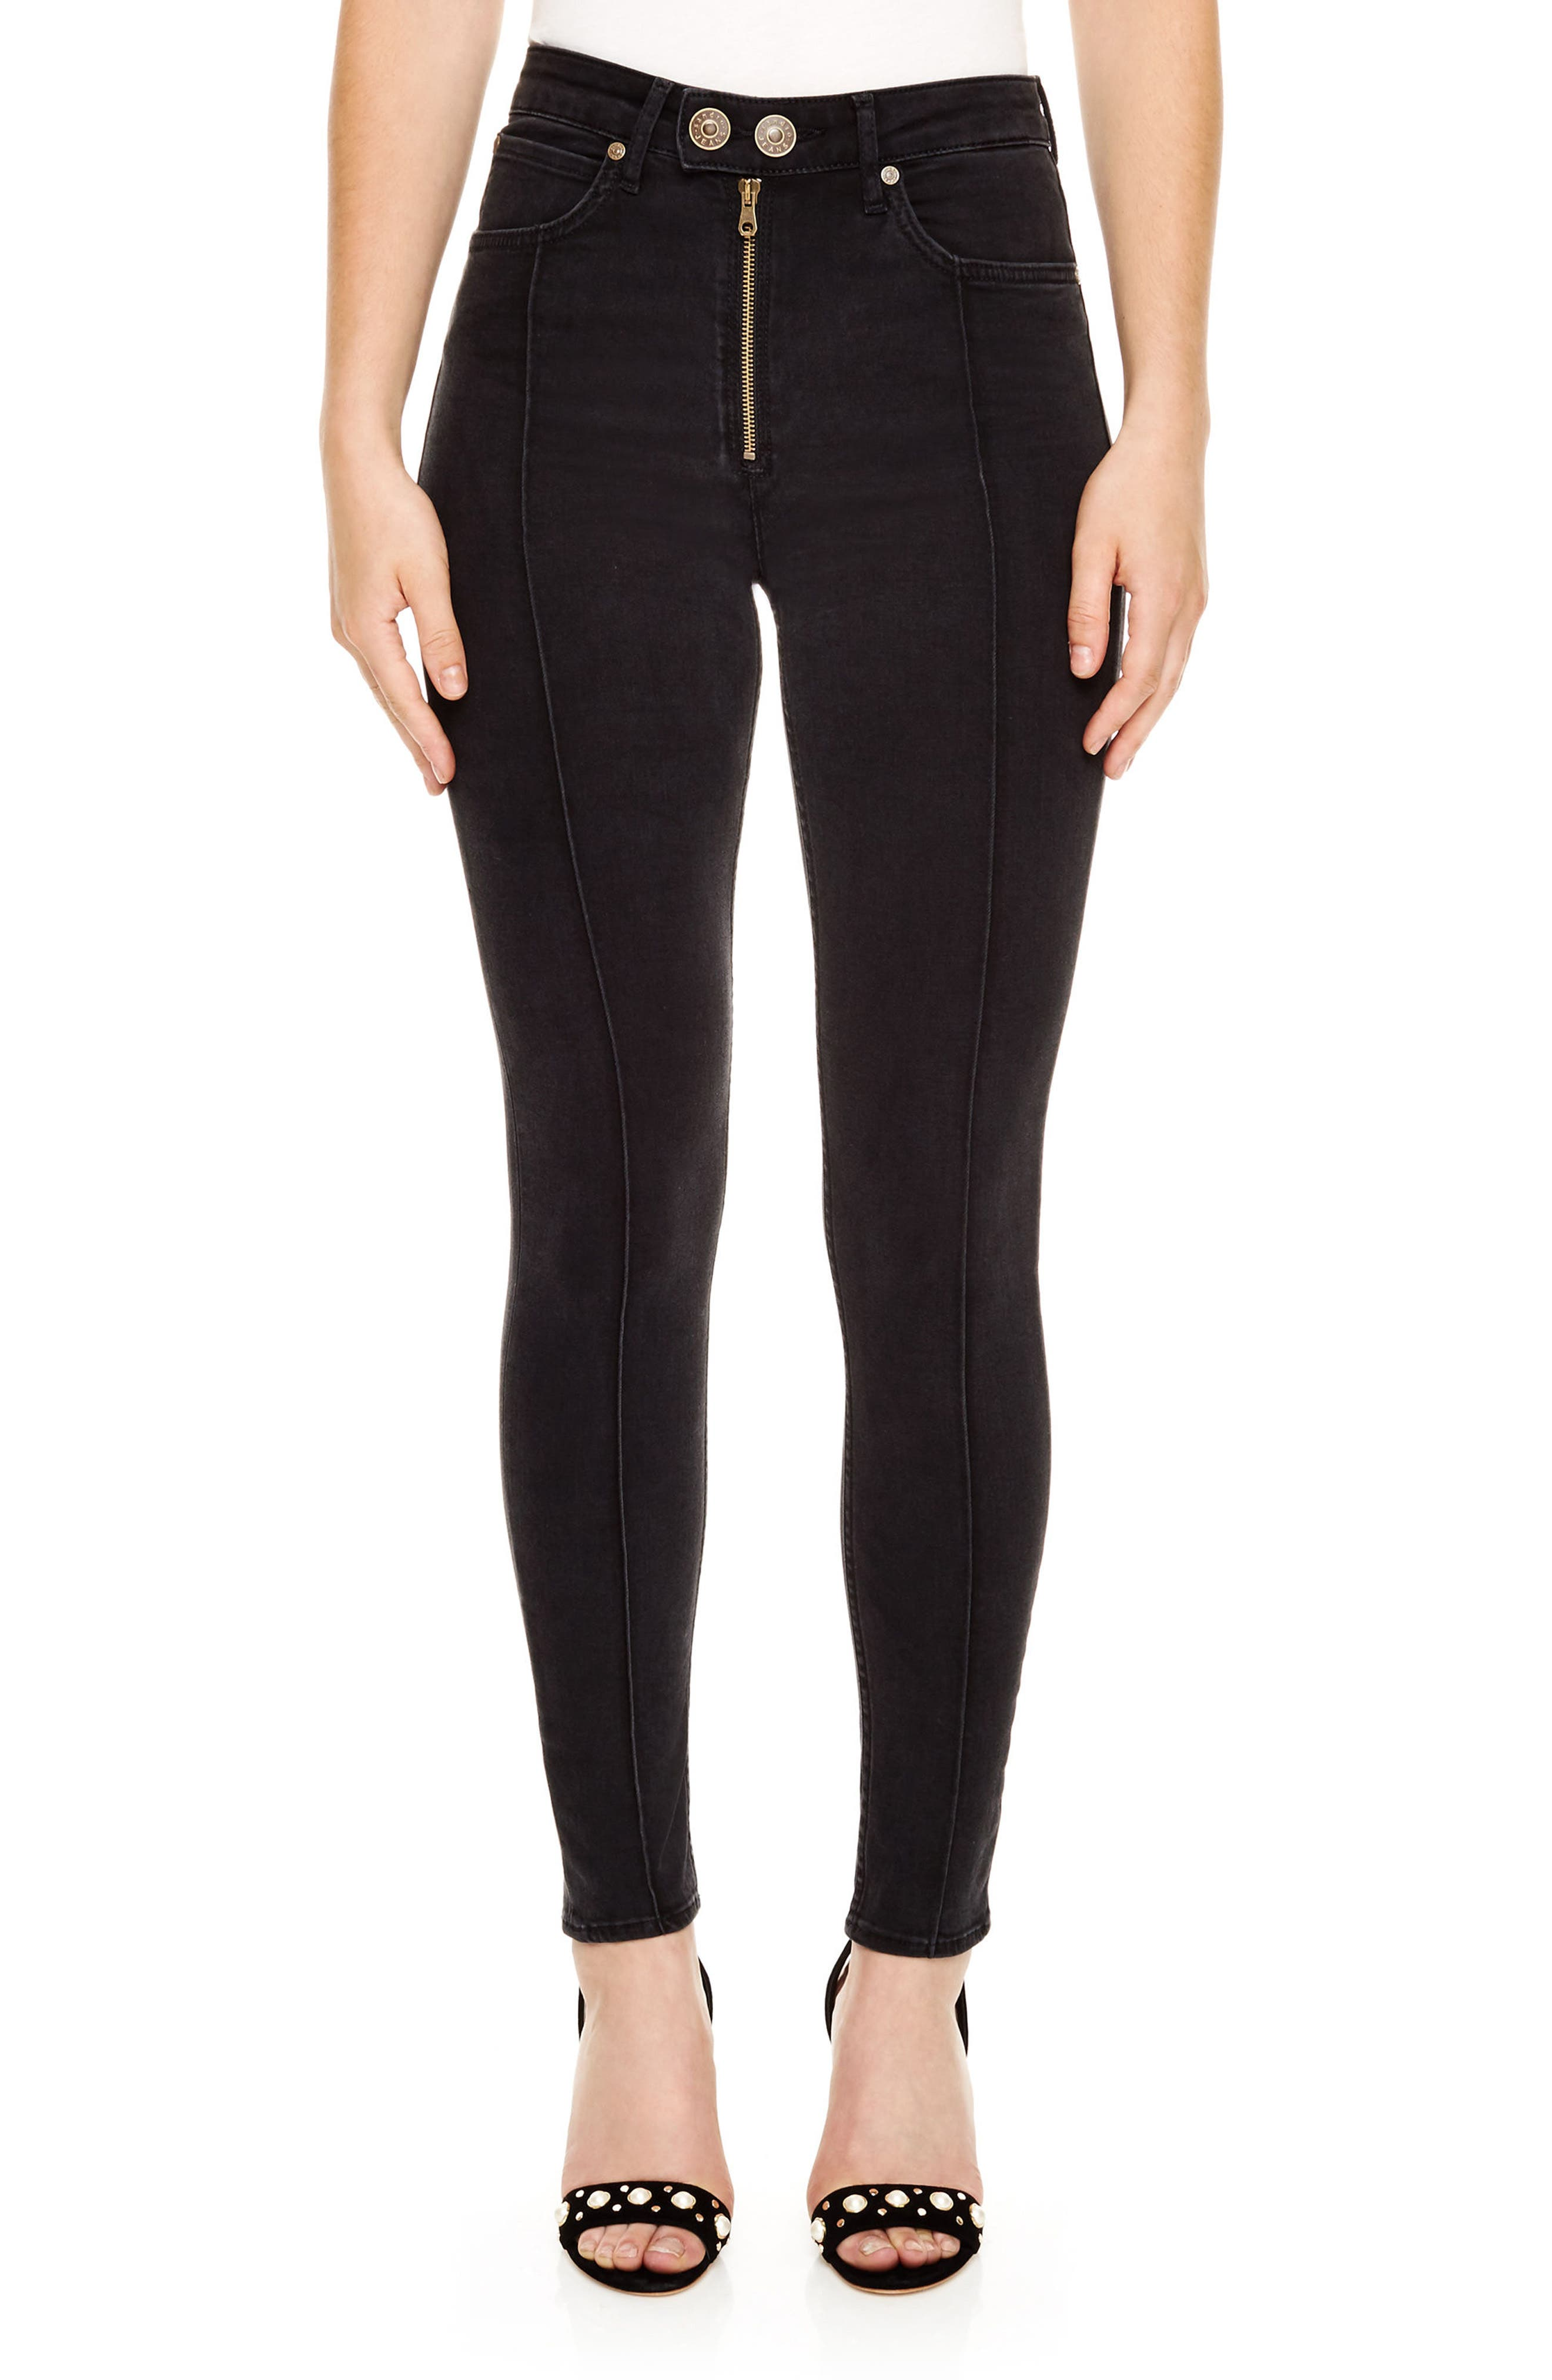 Gregor Skinny Jeans,                             Main thumbnail 1, color,                             BLACK